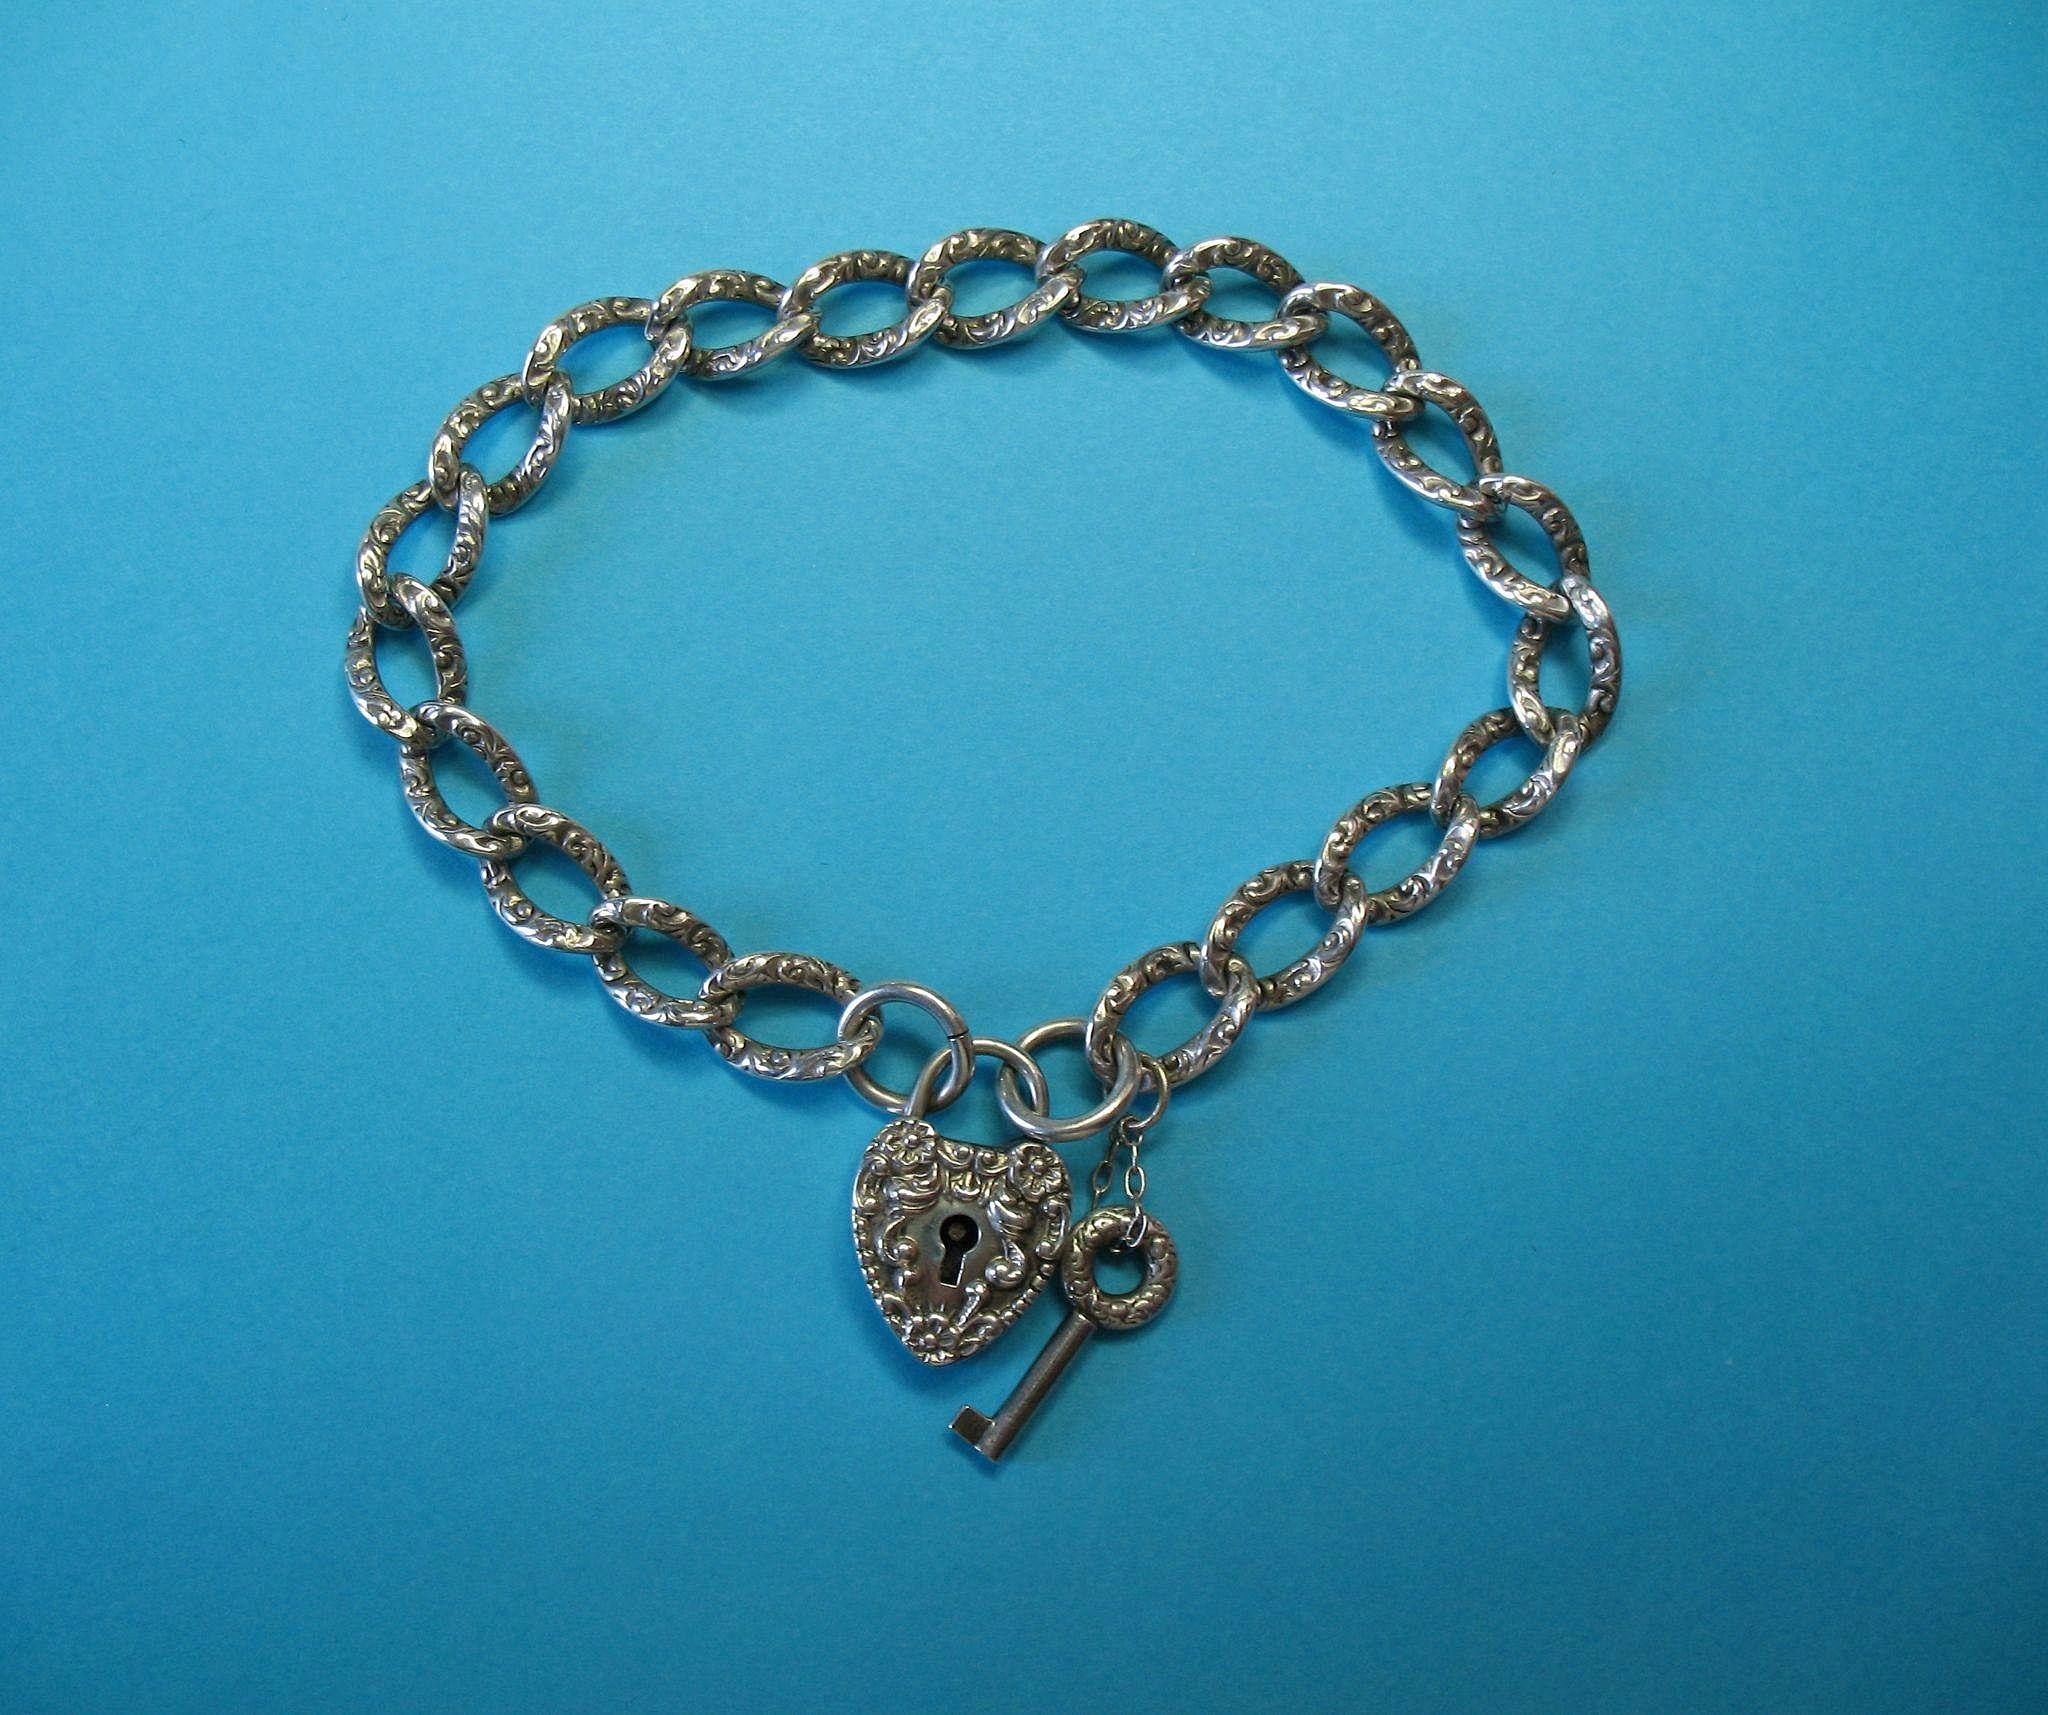 Victorian Sterling Silver Bracelet and Puffy Heart Padlock with Key Charm